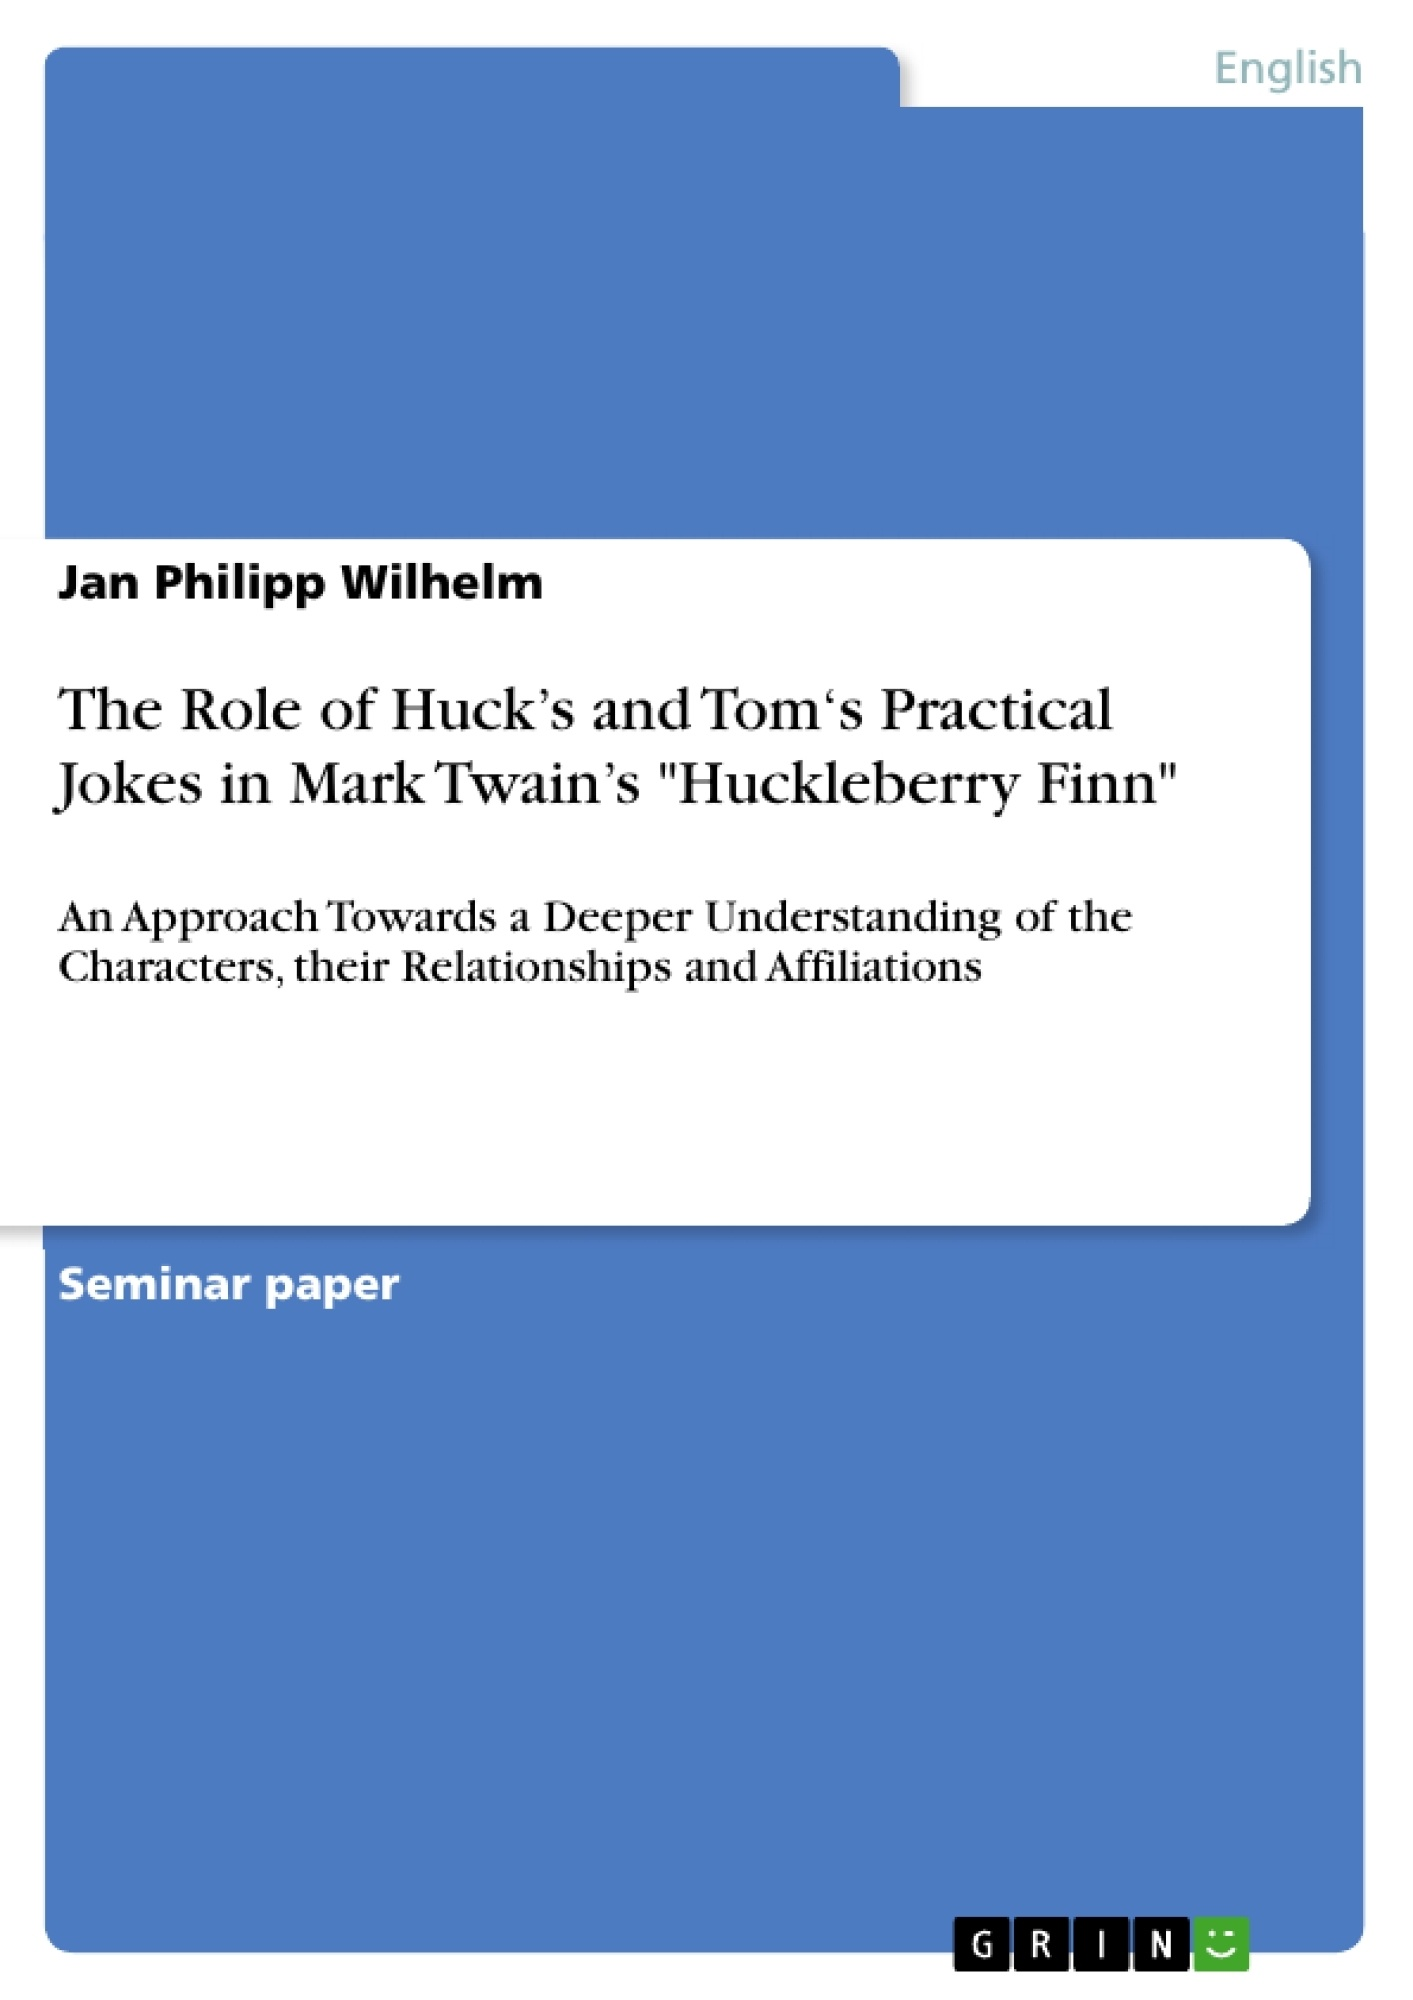 the role of huck s and tom s practical jokes in mark twain s the role of huck s and tom s practical jokes in mark twain s publish your master s thesis bachelor s thesis essay or term paper